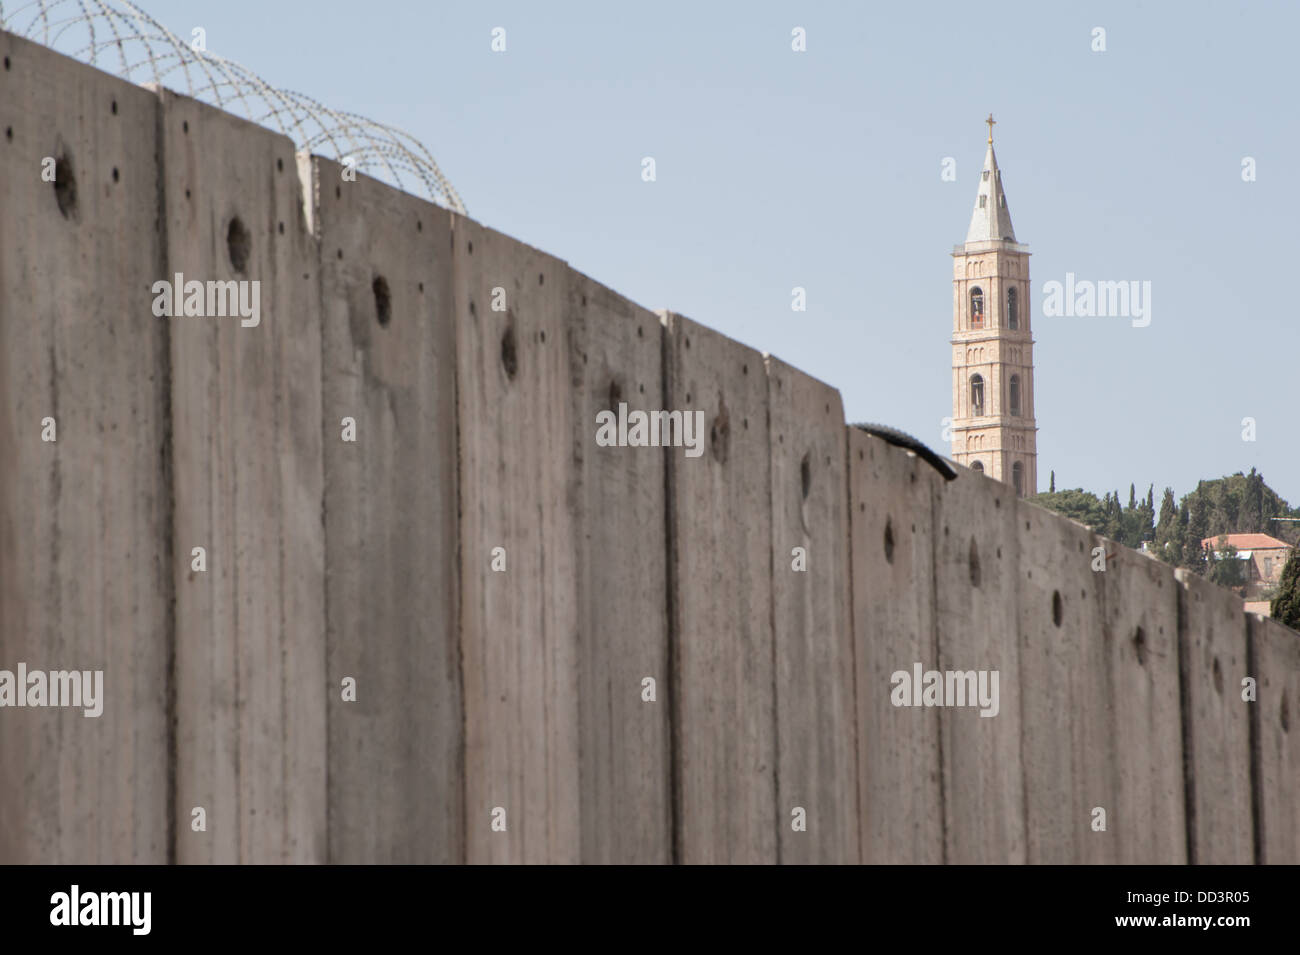 A church tower rises above the Israeli separation wall that divides Palestinian neighborhoods in East Jerusalem. - Stock Image